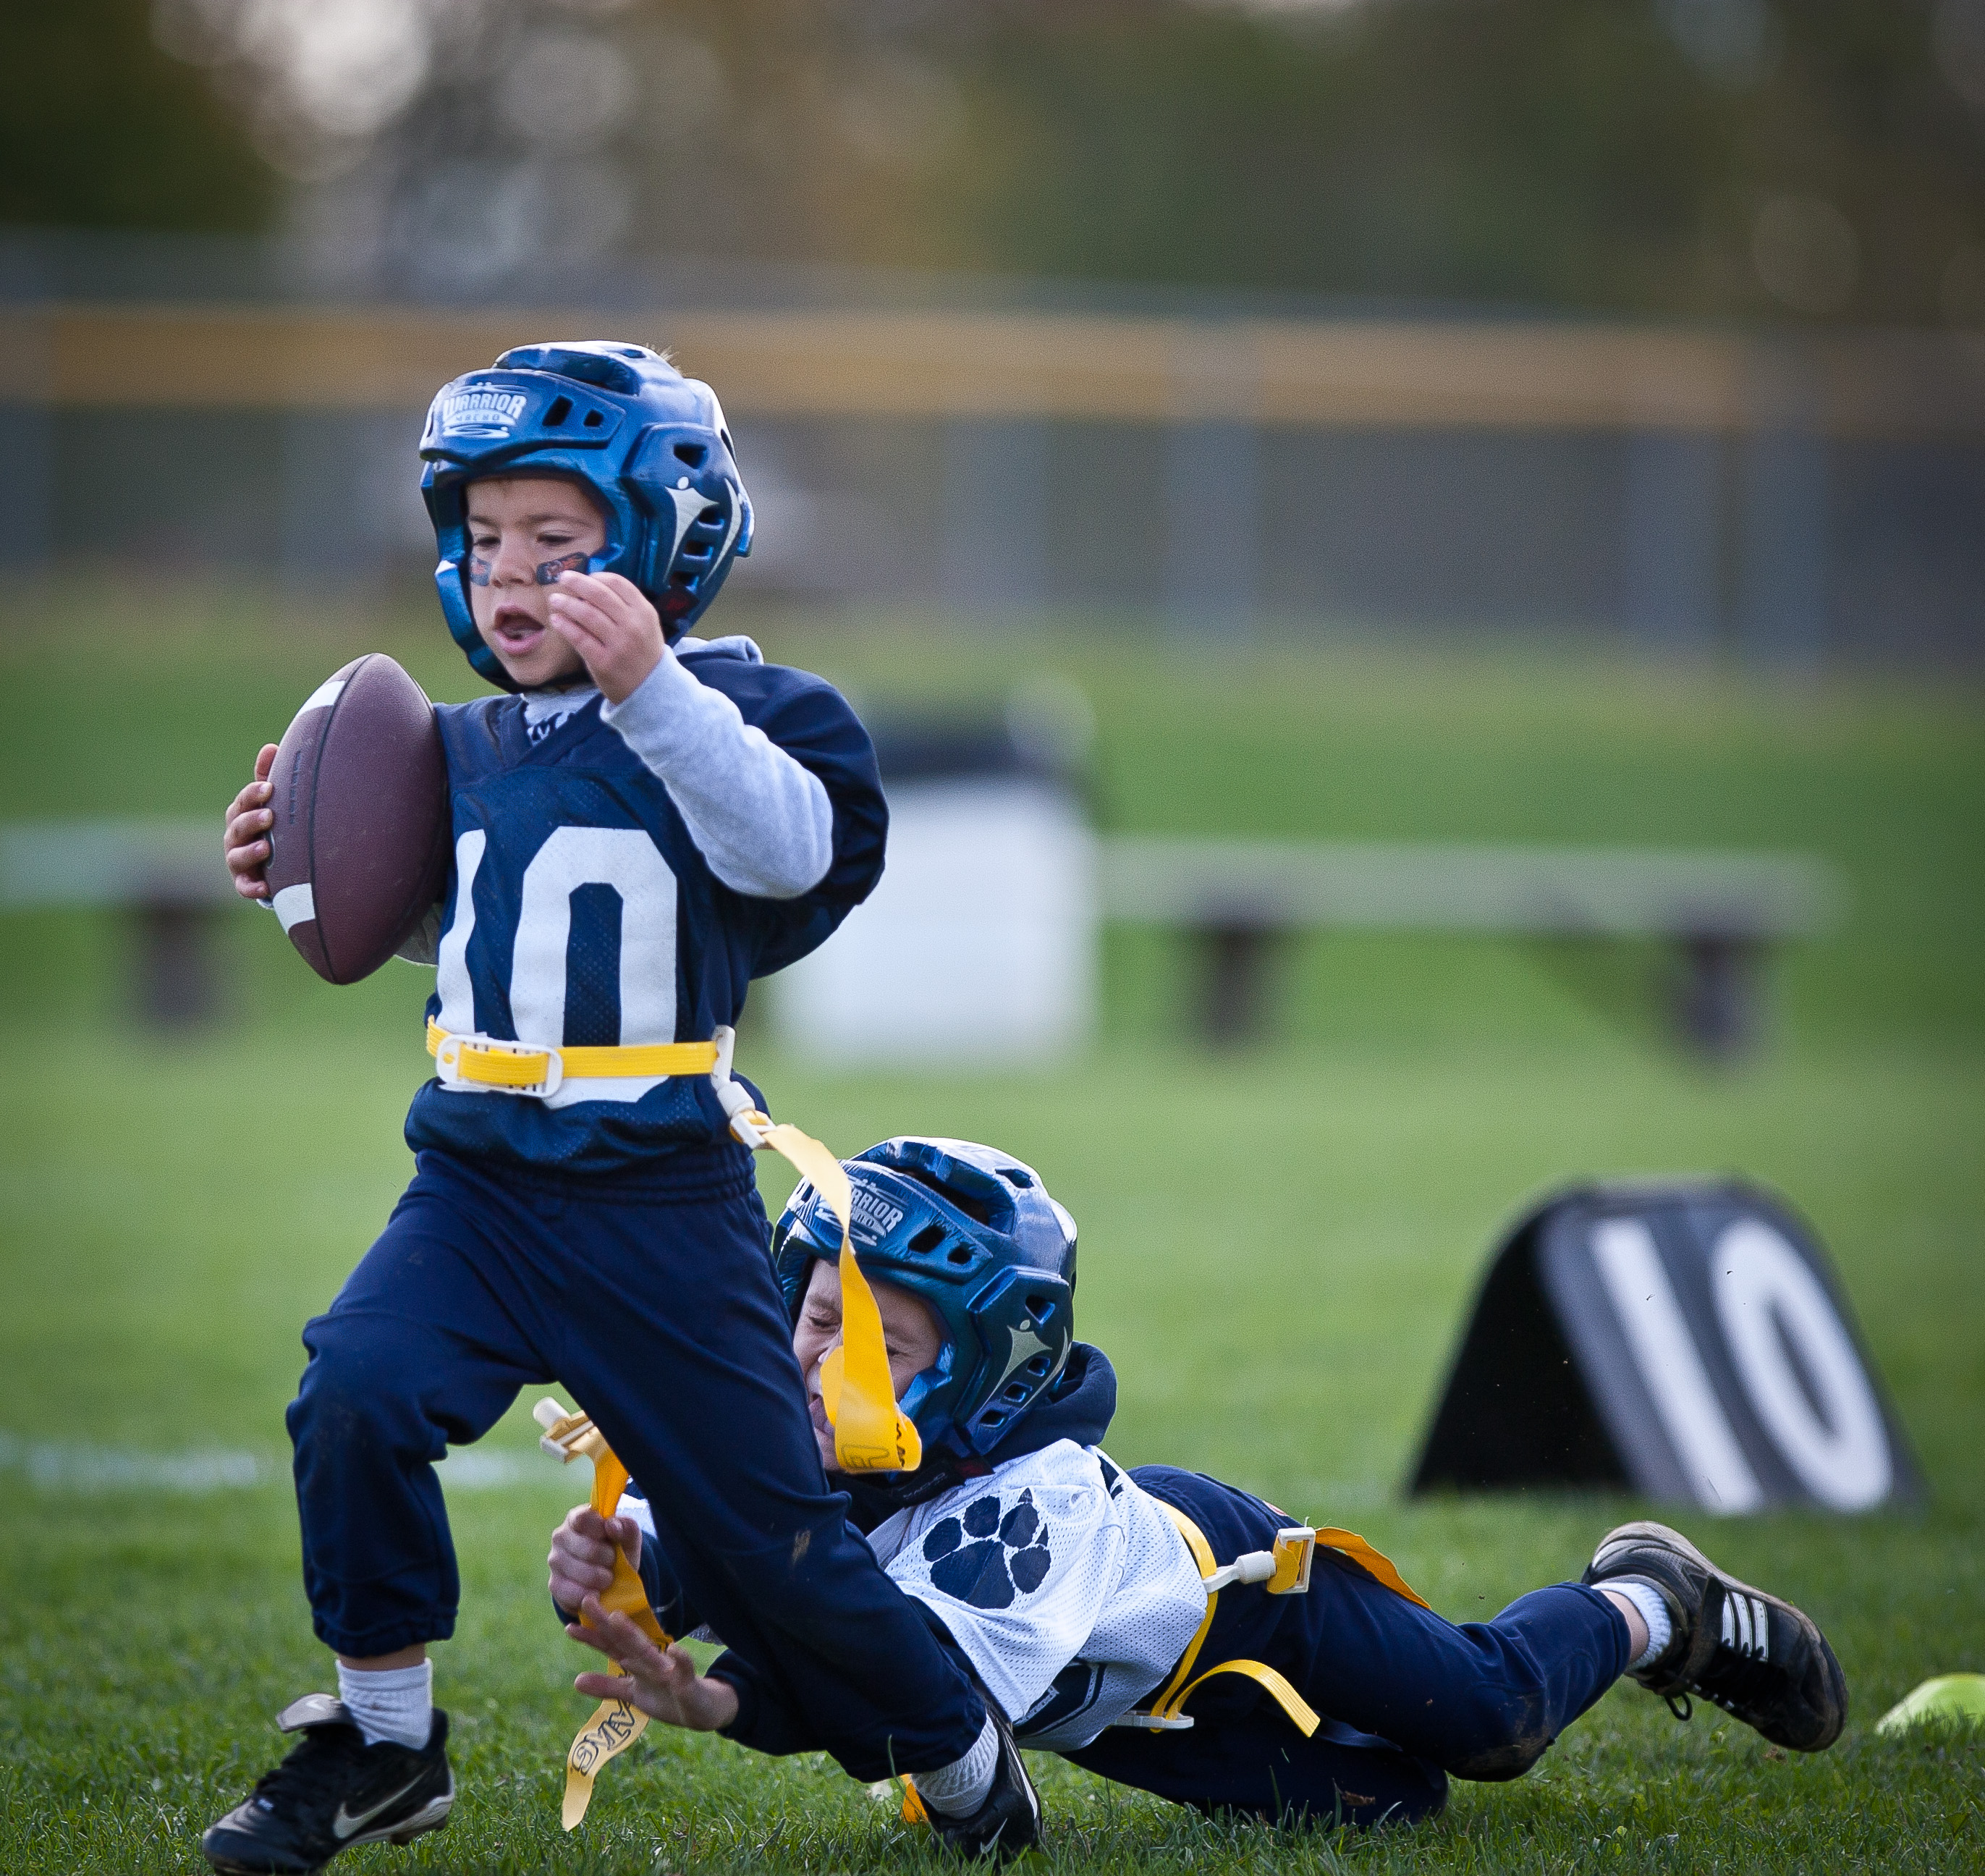 Midget Football Pictures 99